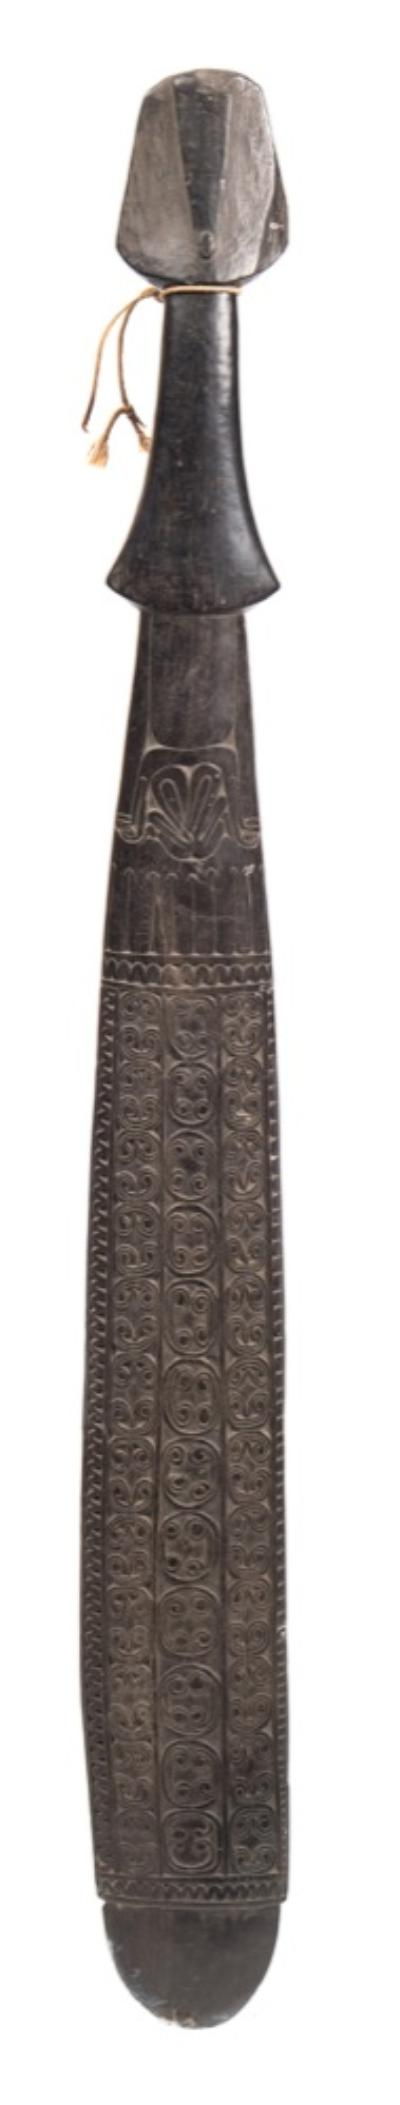 Sale FS40; Lot: 0716: A Trobriand Island club the flattened blade decorated with incised rows of geometric scrolling motifs and bird decoration, the shaped hilt of spade -shaped outline, overall length 79cm.